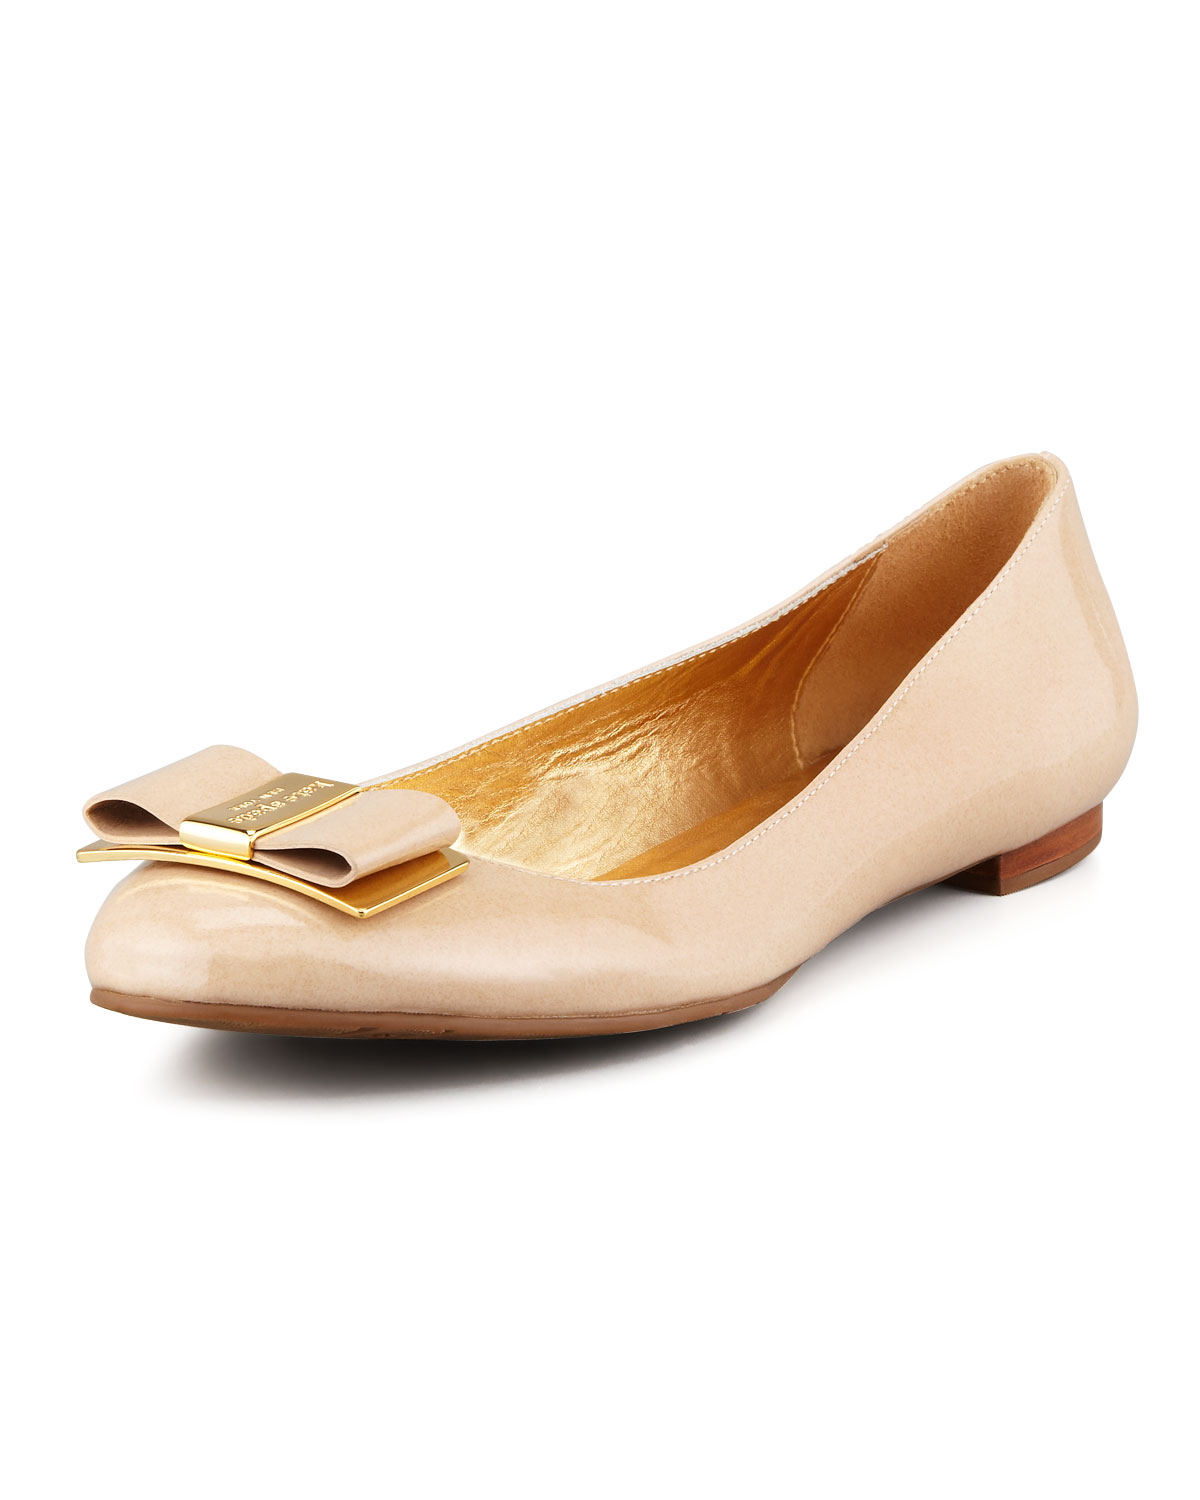 trophy bow patent leather flat, powder   kate spade new york   Powder (nude)